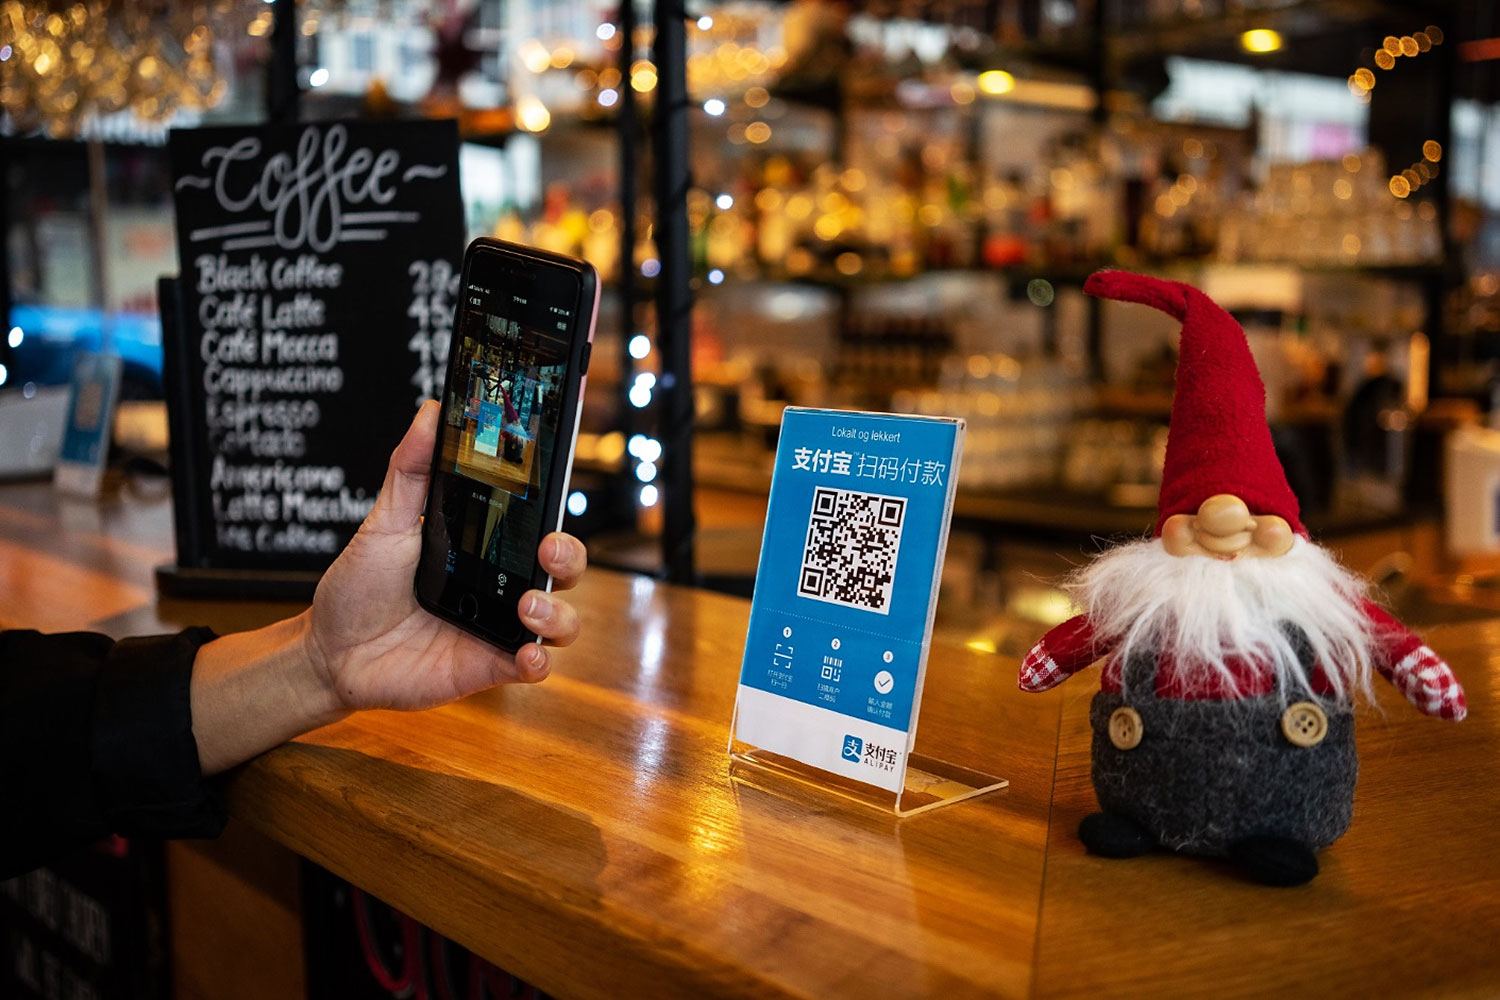 Retailers accepting mobile payments have observed that Chinese customers are more interested in buying when a mobile payment solution from their country is available.